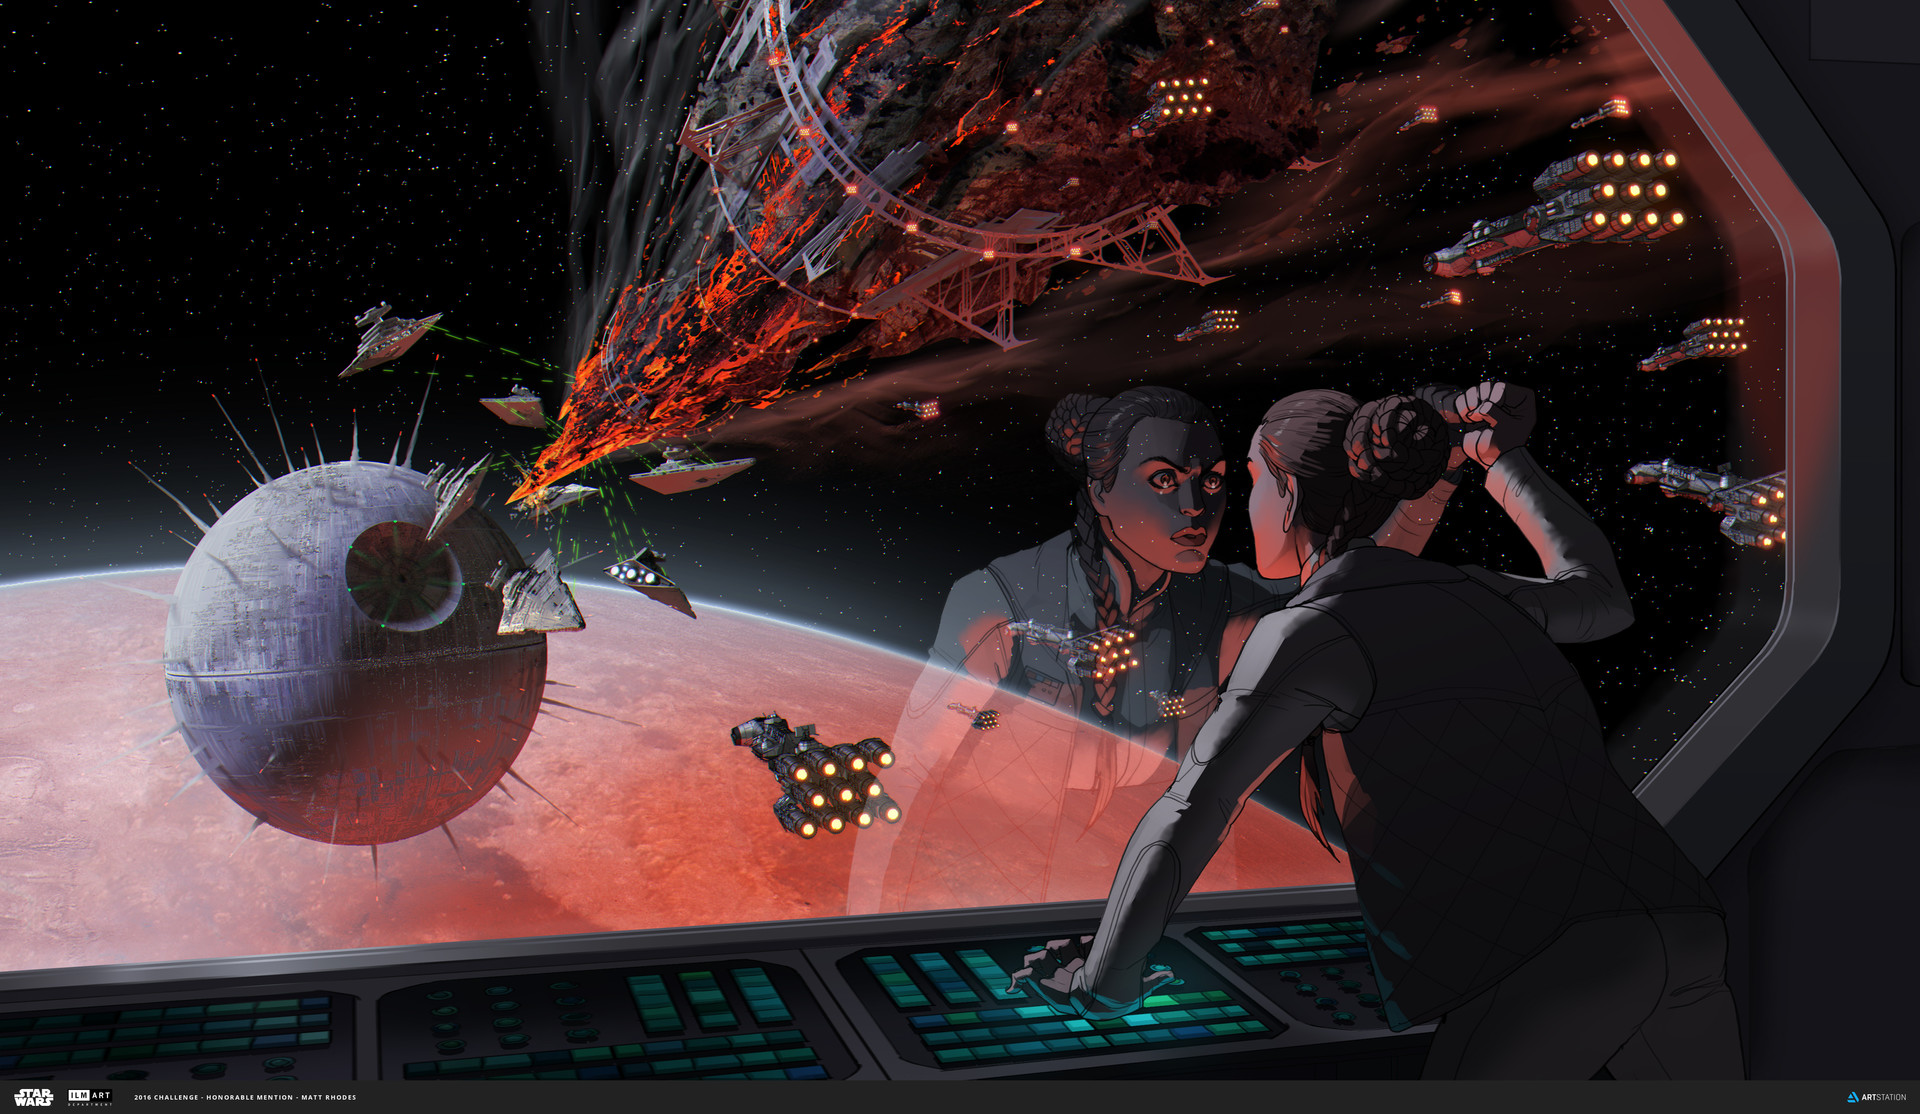 """""""The Revenge of Alderaan""""  Trench runs and exhaust ports are great, but I wanted to explore a more blunt, emotional statement. The Rebels recovered the largest remaining piece of Alderaan, and they're going to punch a revenge-hole."""